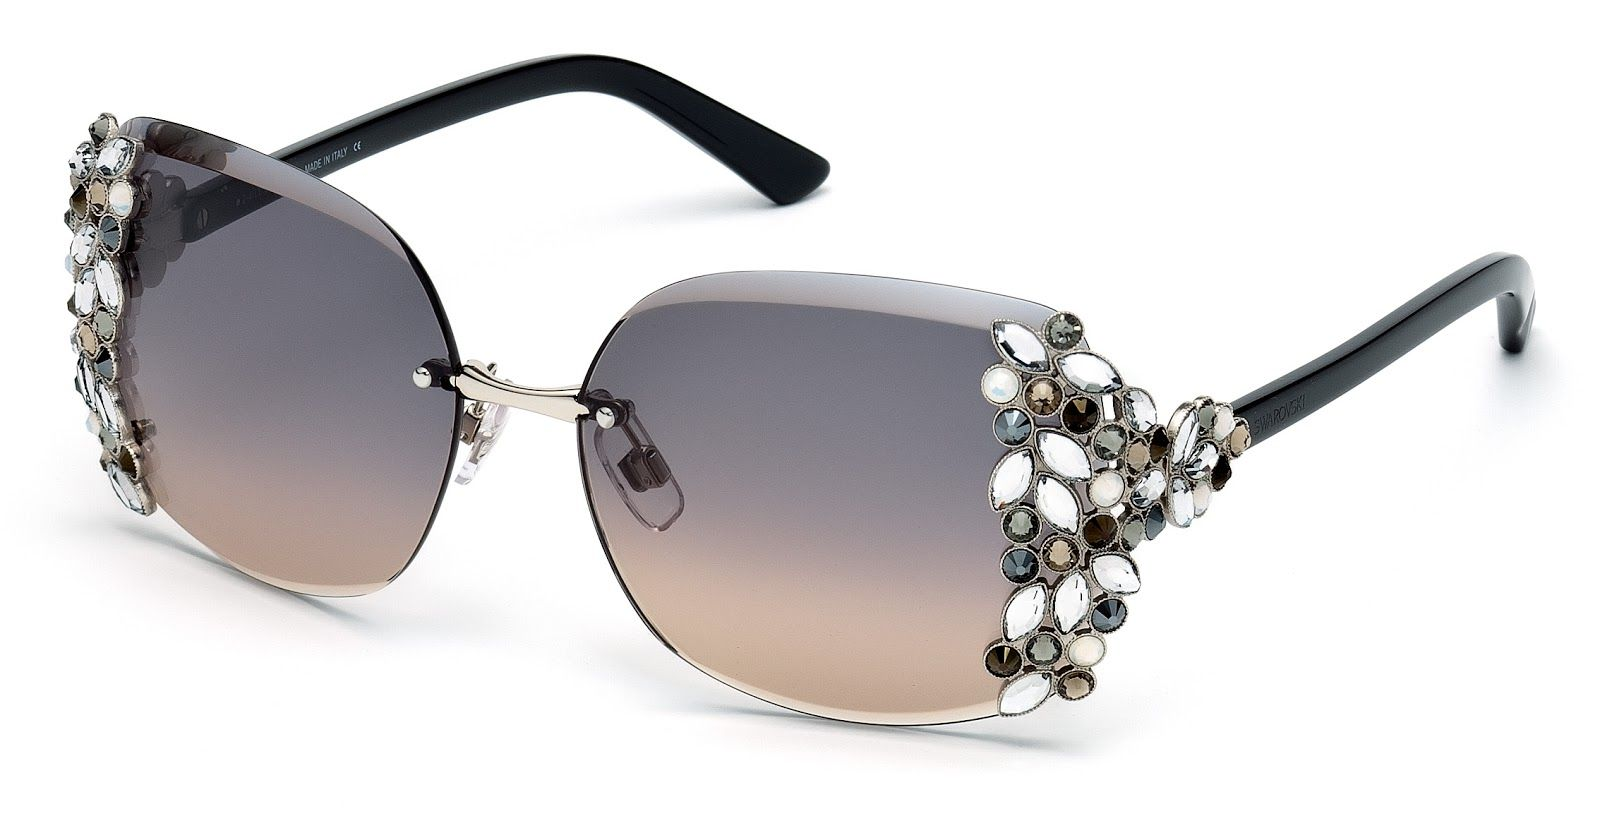 2c9497fccb8d Swarovski eyewear collection..! bling bling | F A S H I O N ...